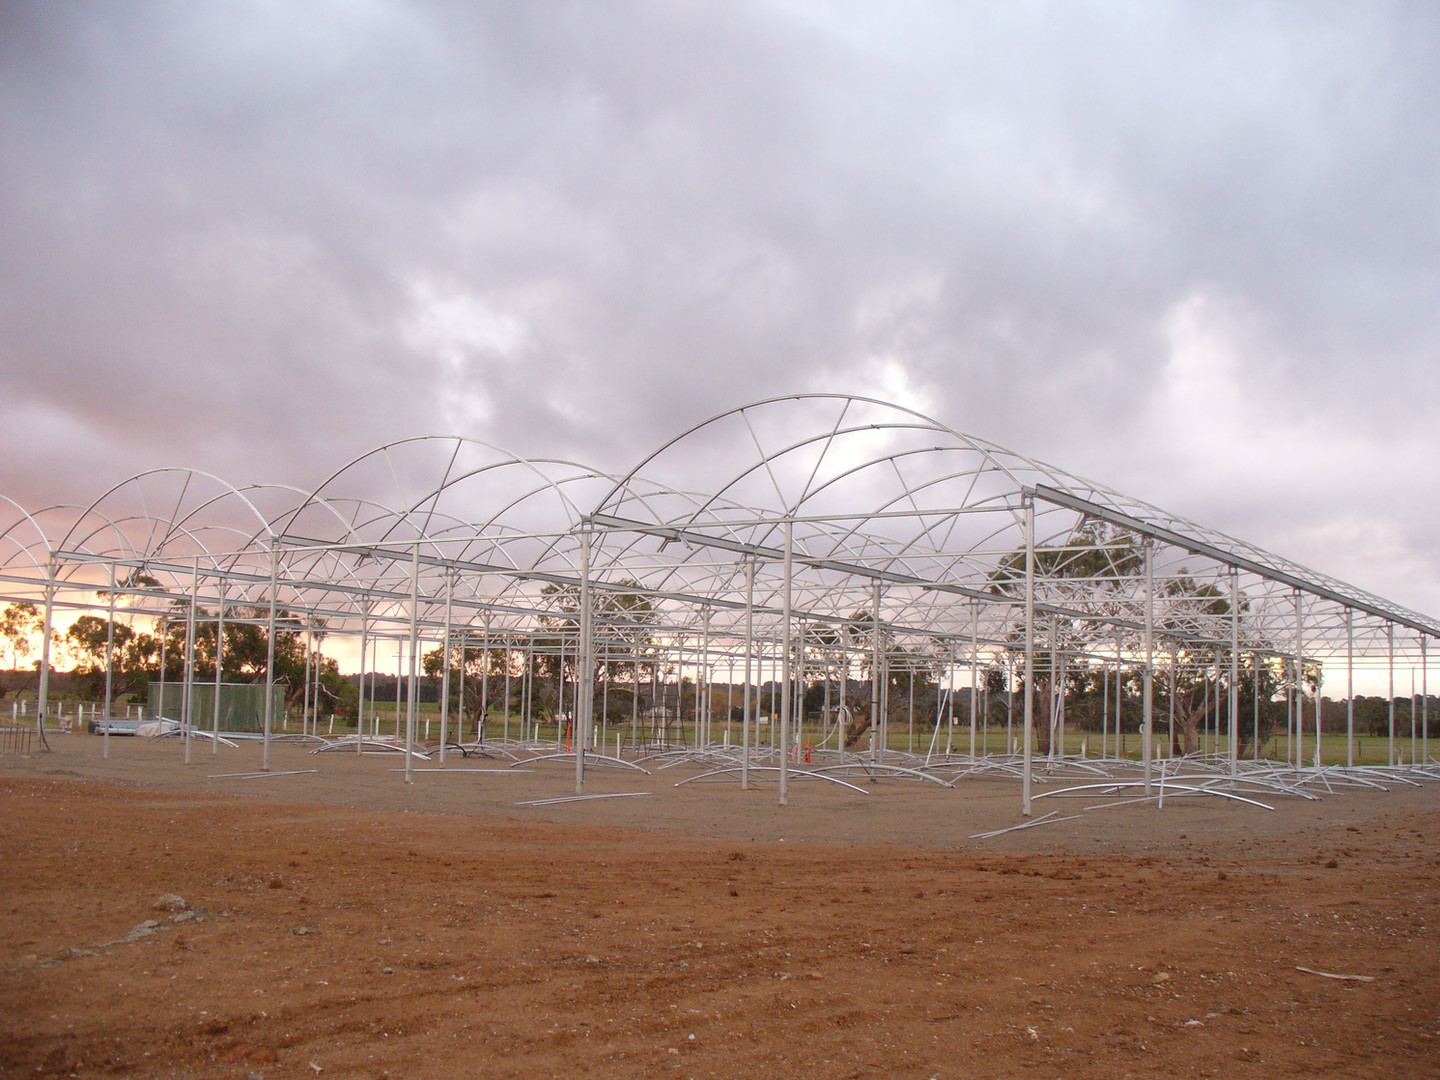 With the domed roof on, the nursery is really starting to take shape.